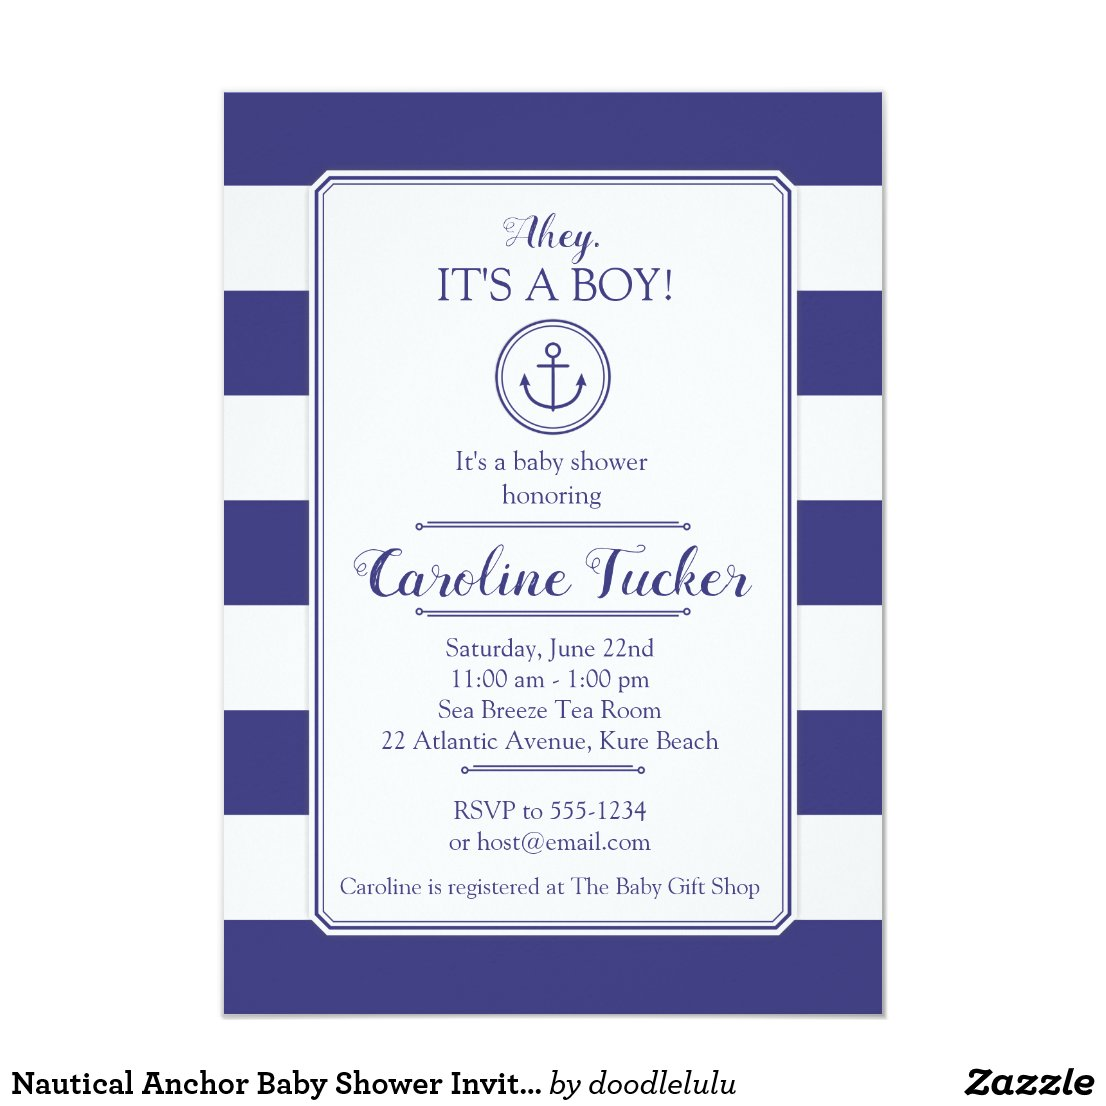 Nautical Anchor Baby Shower Invitation card